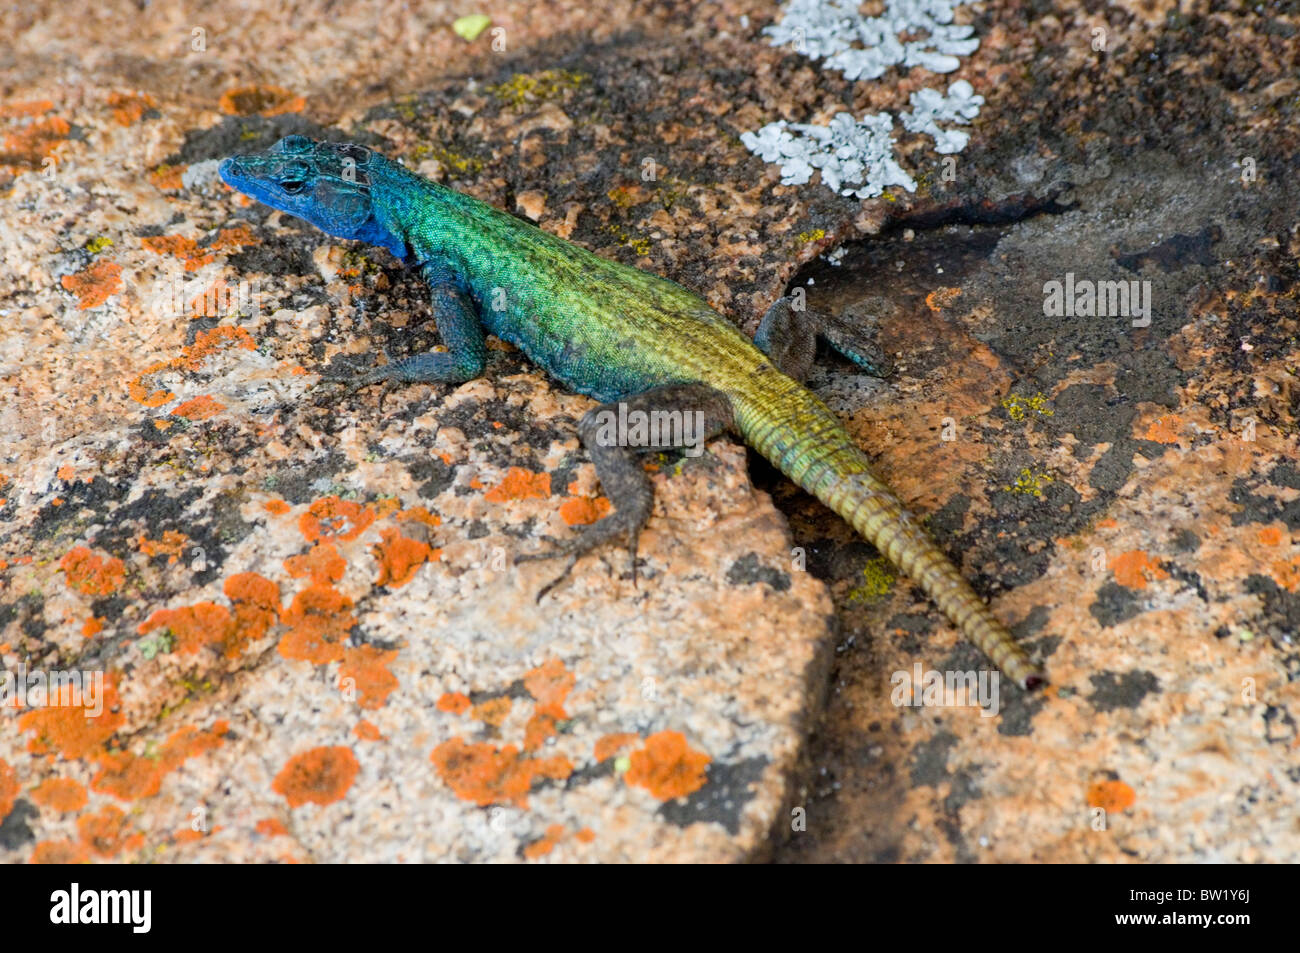 Platysaurus broadleyi, also commonly known as Augrabies flat lizard, in the Matobo National Park, Zimbabwe - Stock Image